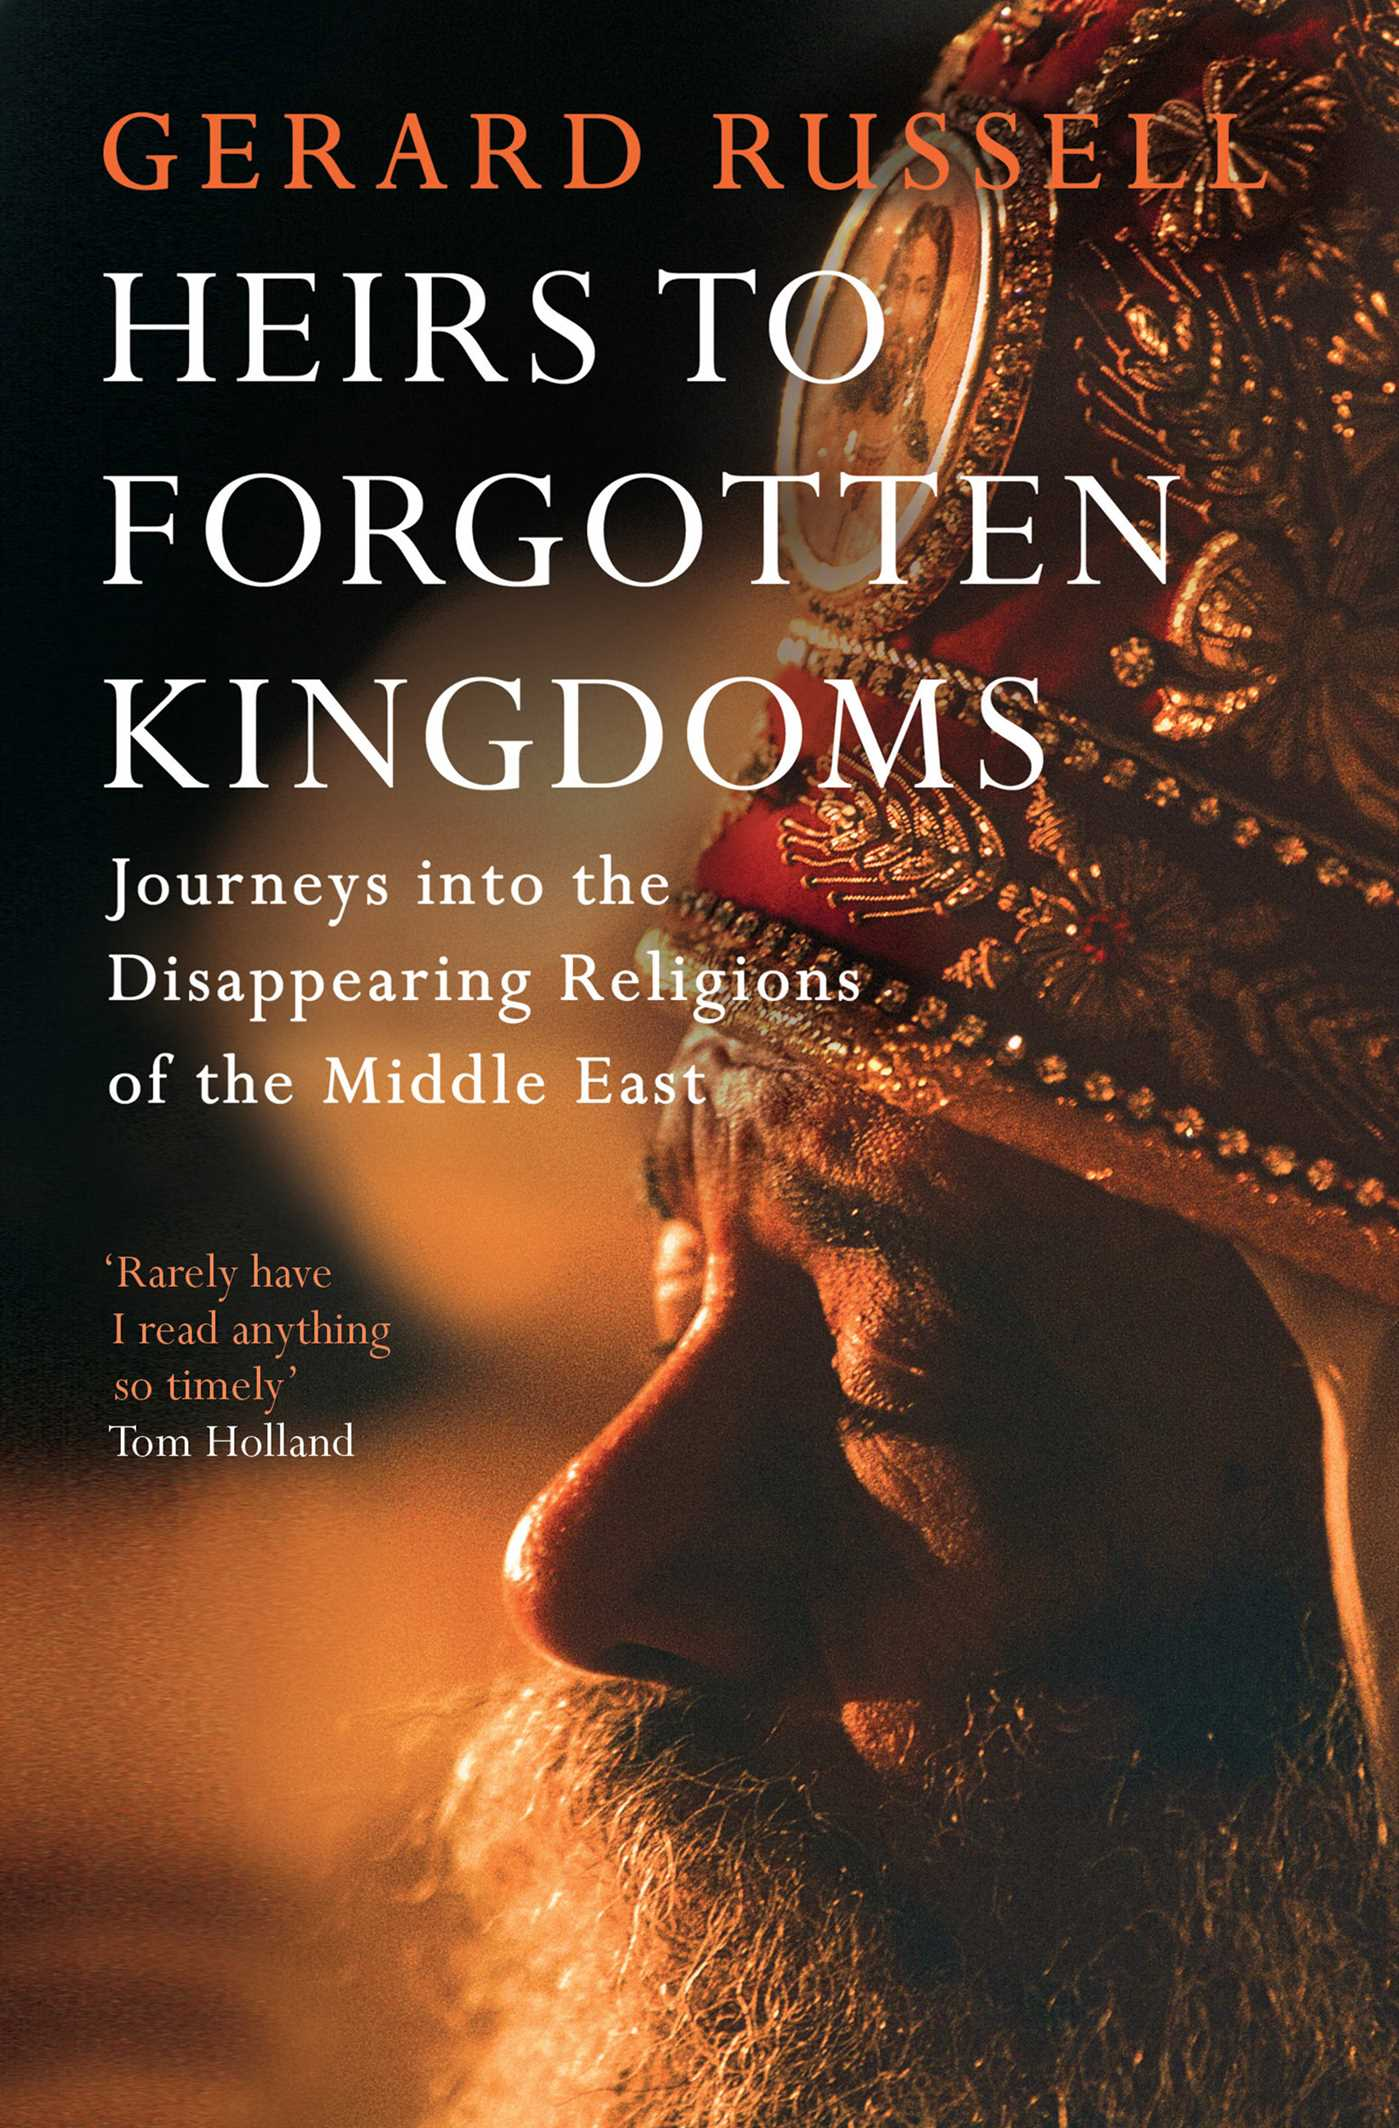 Heirs to Forgotten Kingdoms | Book by Gerard Russell